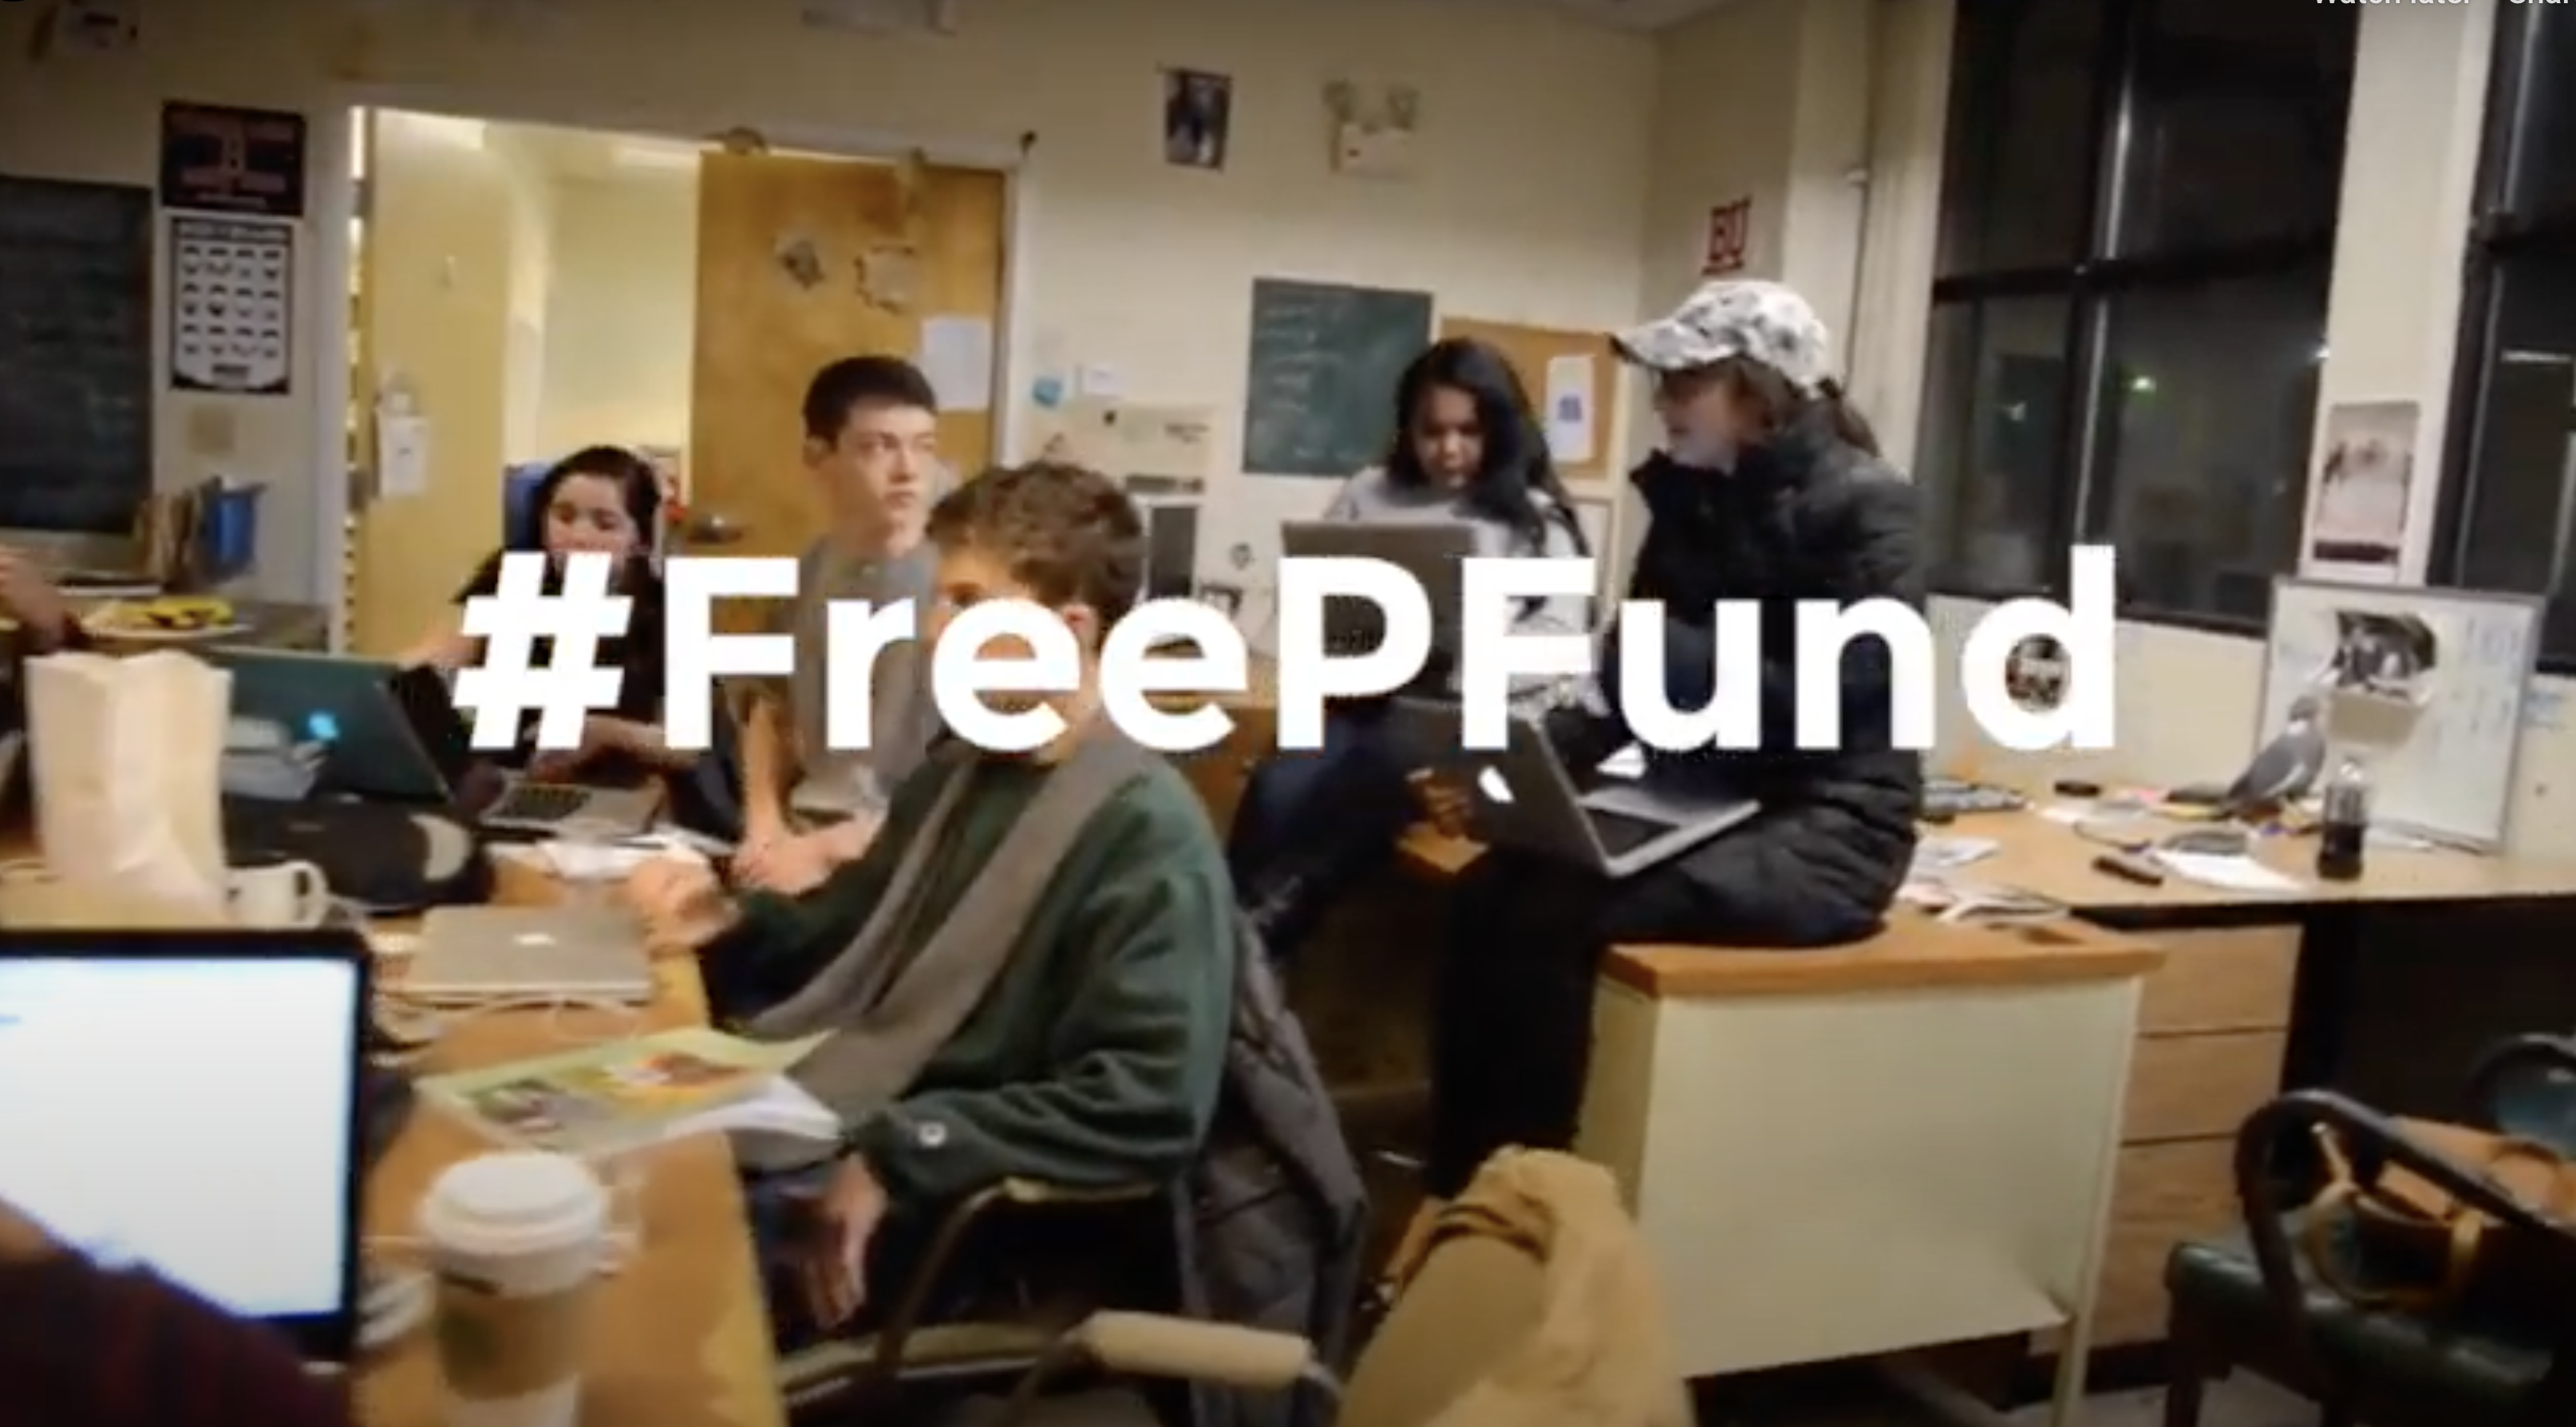 screenshot of the daily press fund video with hashtag